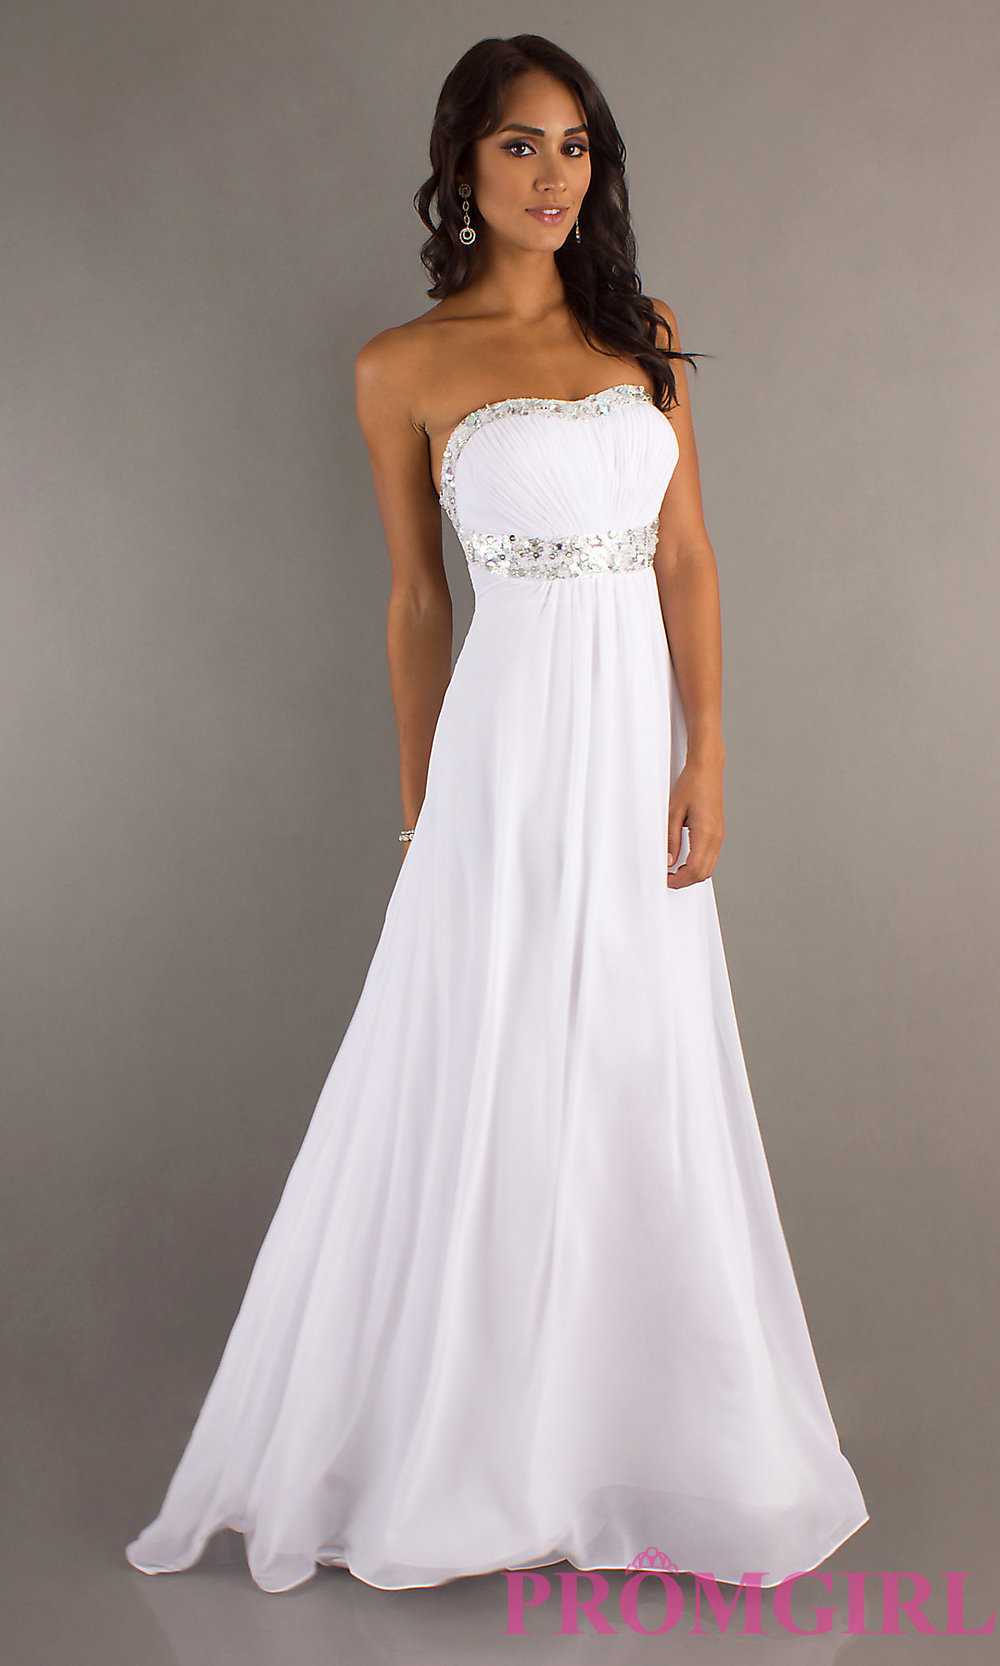 Elegant White Gowns La Femme Prom Dresses in White- PromGirl